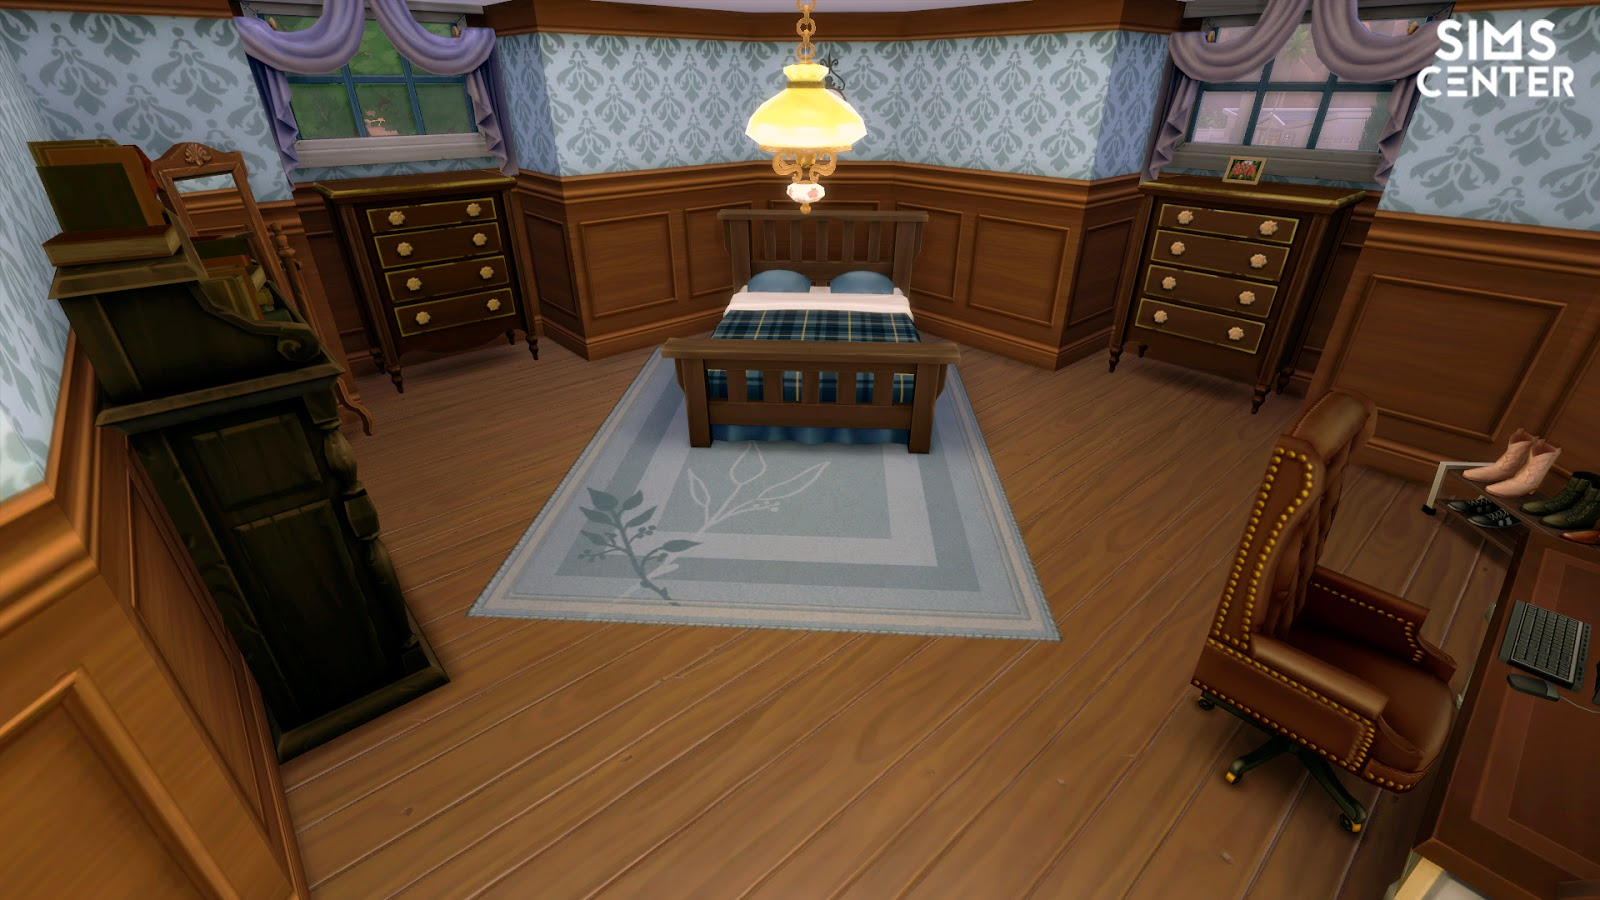 Le classic house sims center for Classic house sims 4